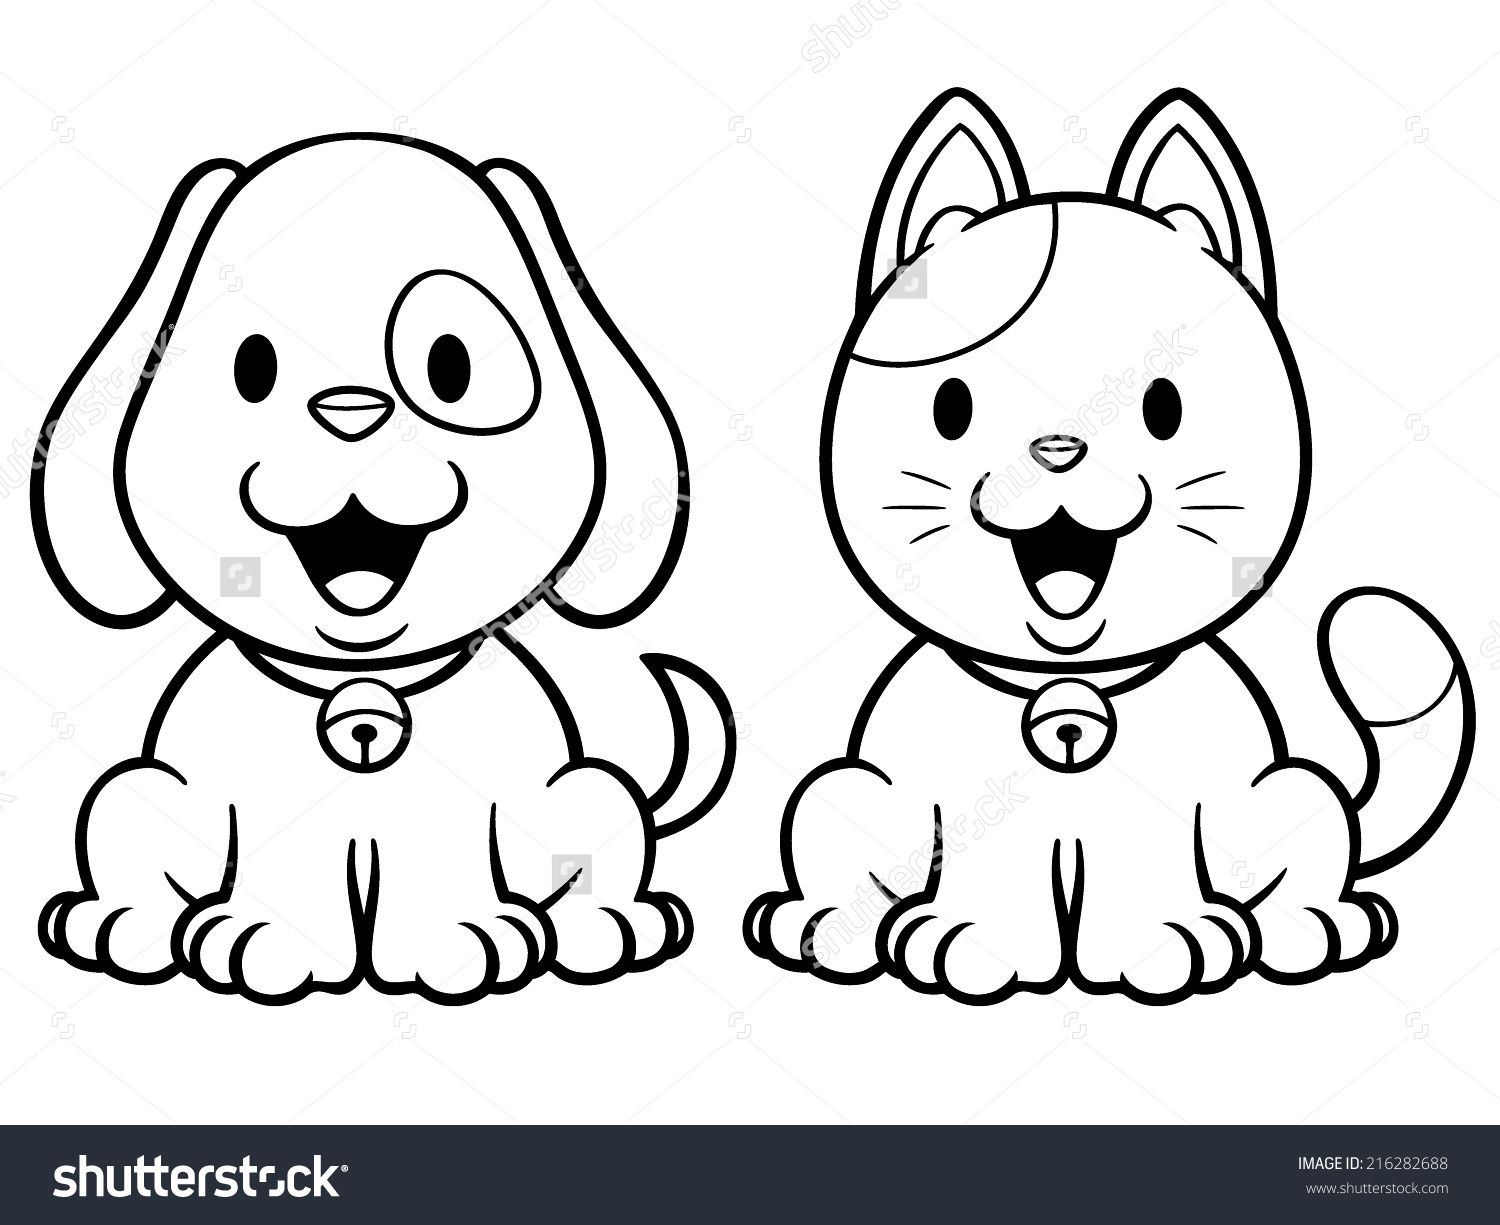 39+ Cat dog cartoon coloring pages ideas in 2021